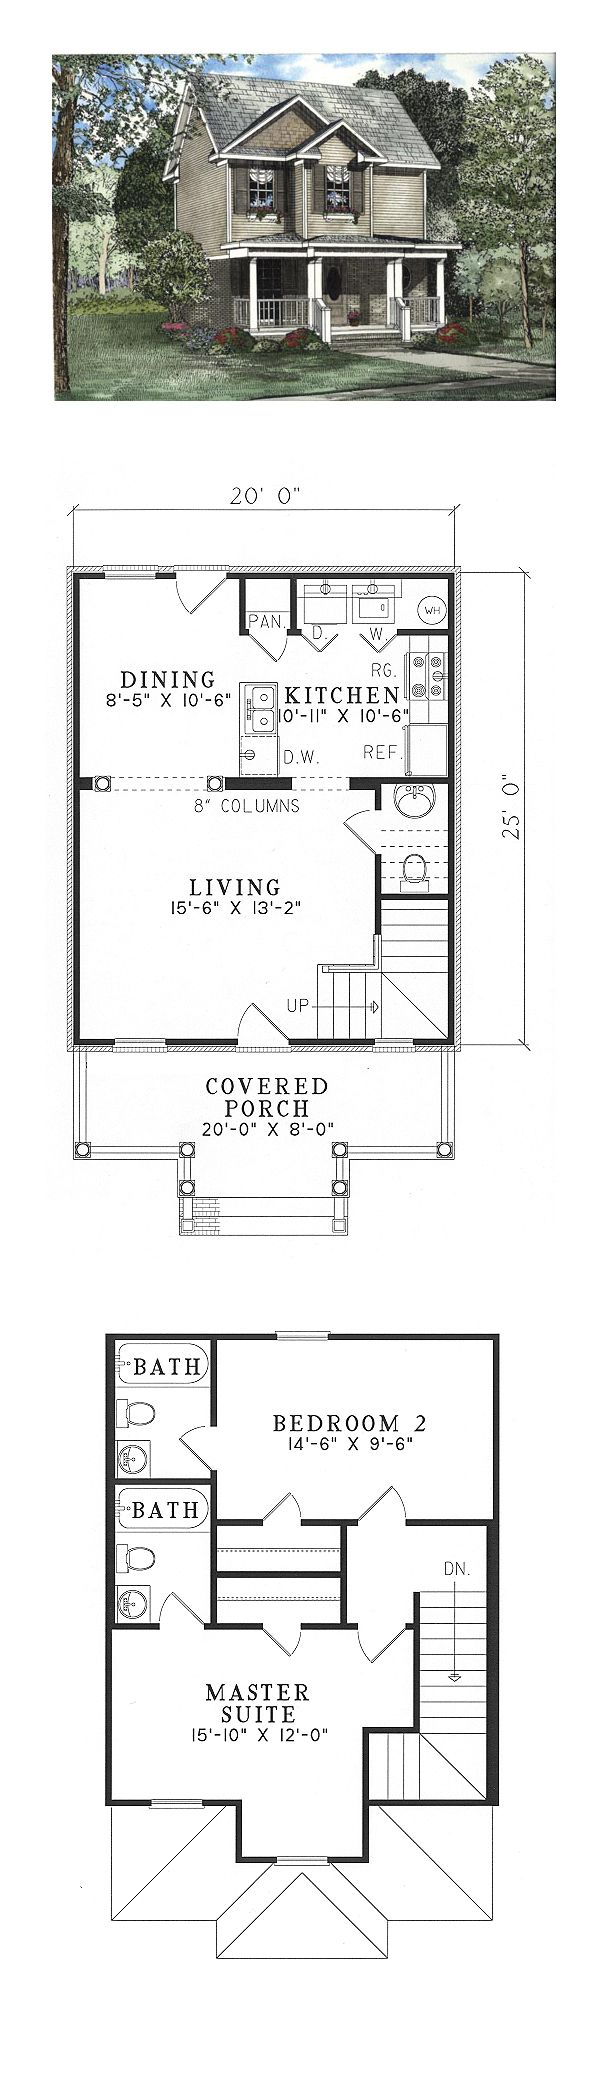 Best 25 narrow lot house plans ideas on pinterest narrow house plans retirement house plans Narrow lot house plans